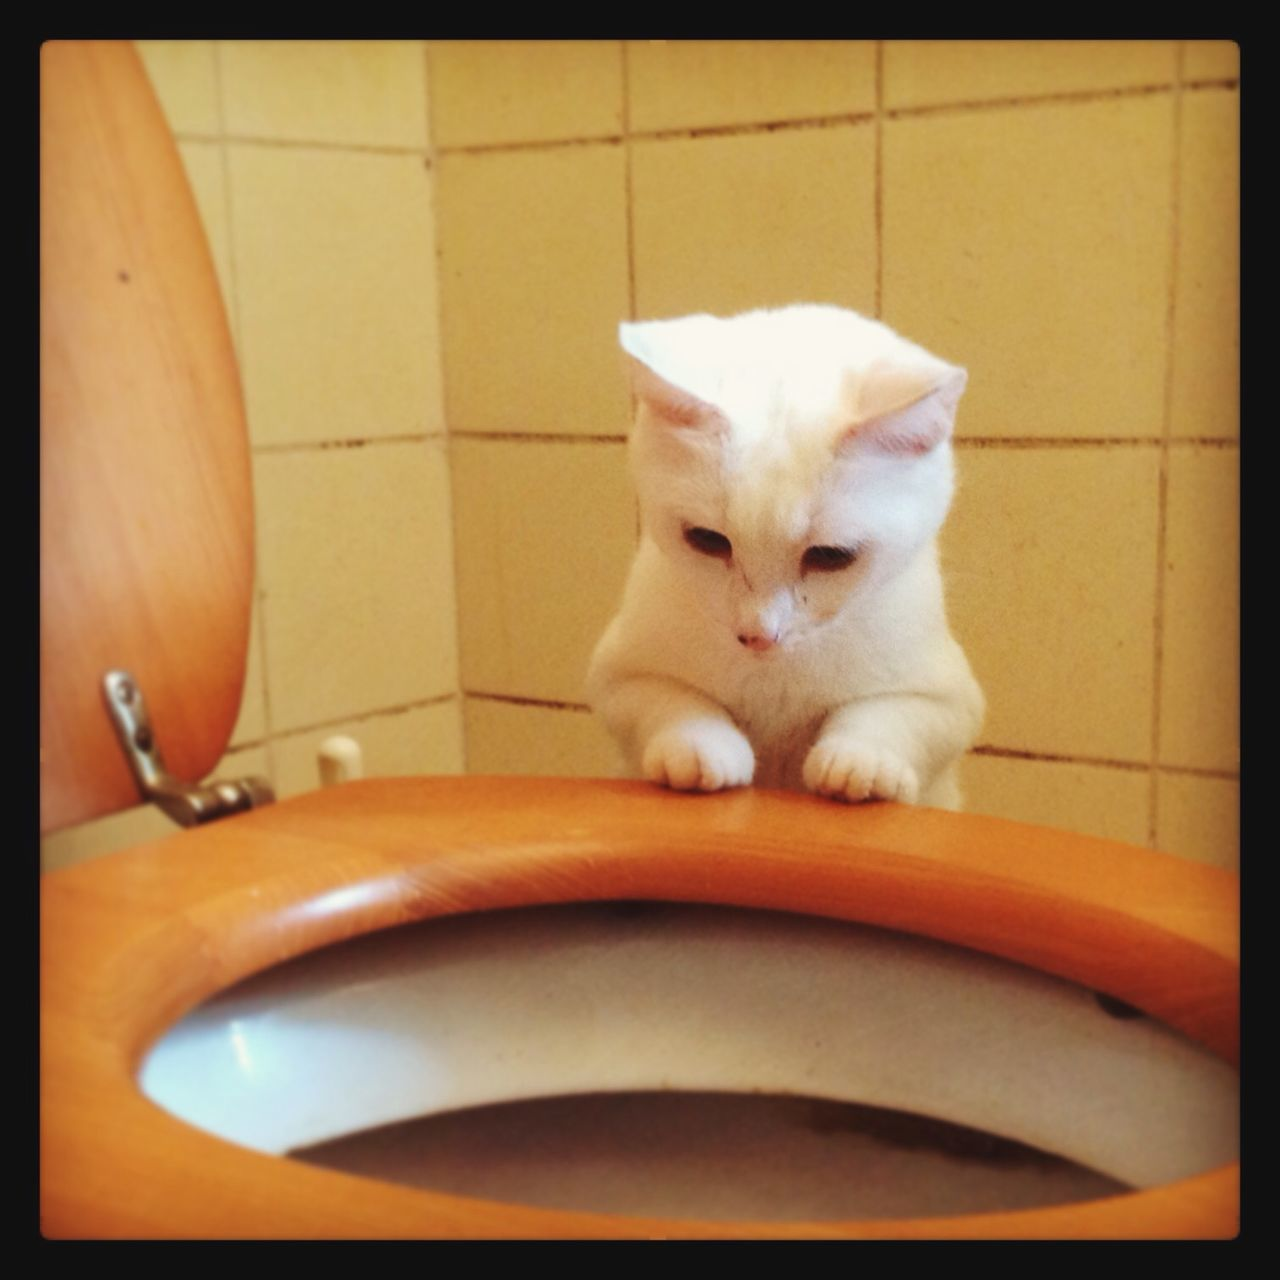 Xiaobai investigating the loo. Cat Chat Loo Xiaobai Wc Bathroom First Eyeem Photo Whitecat